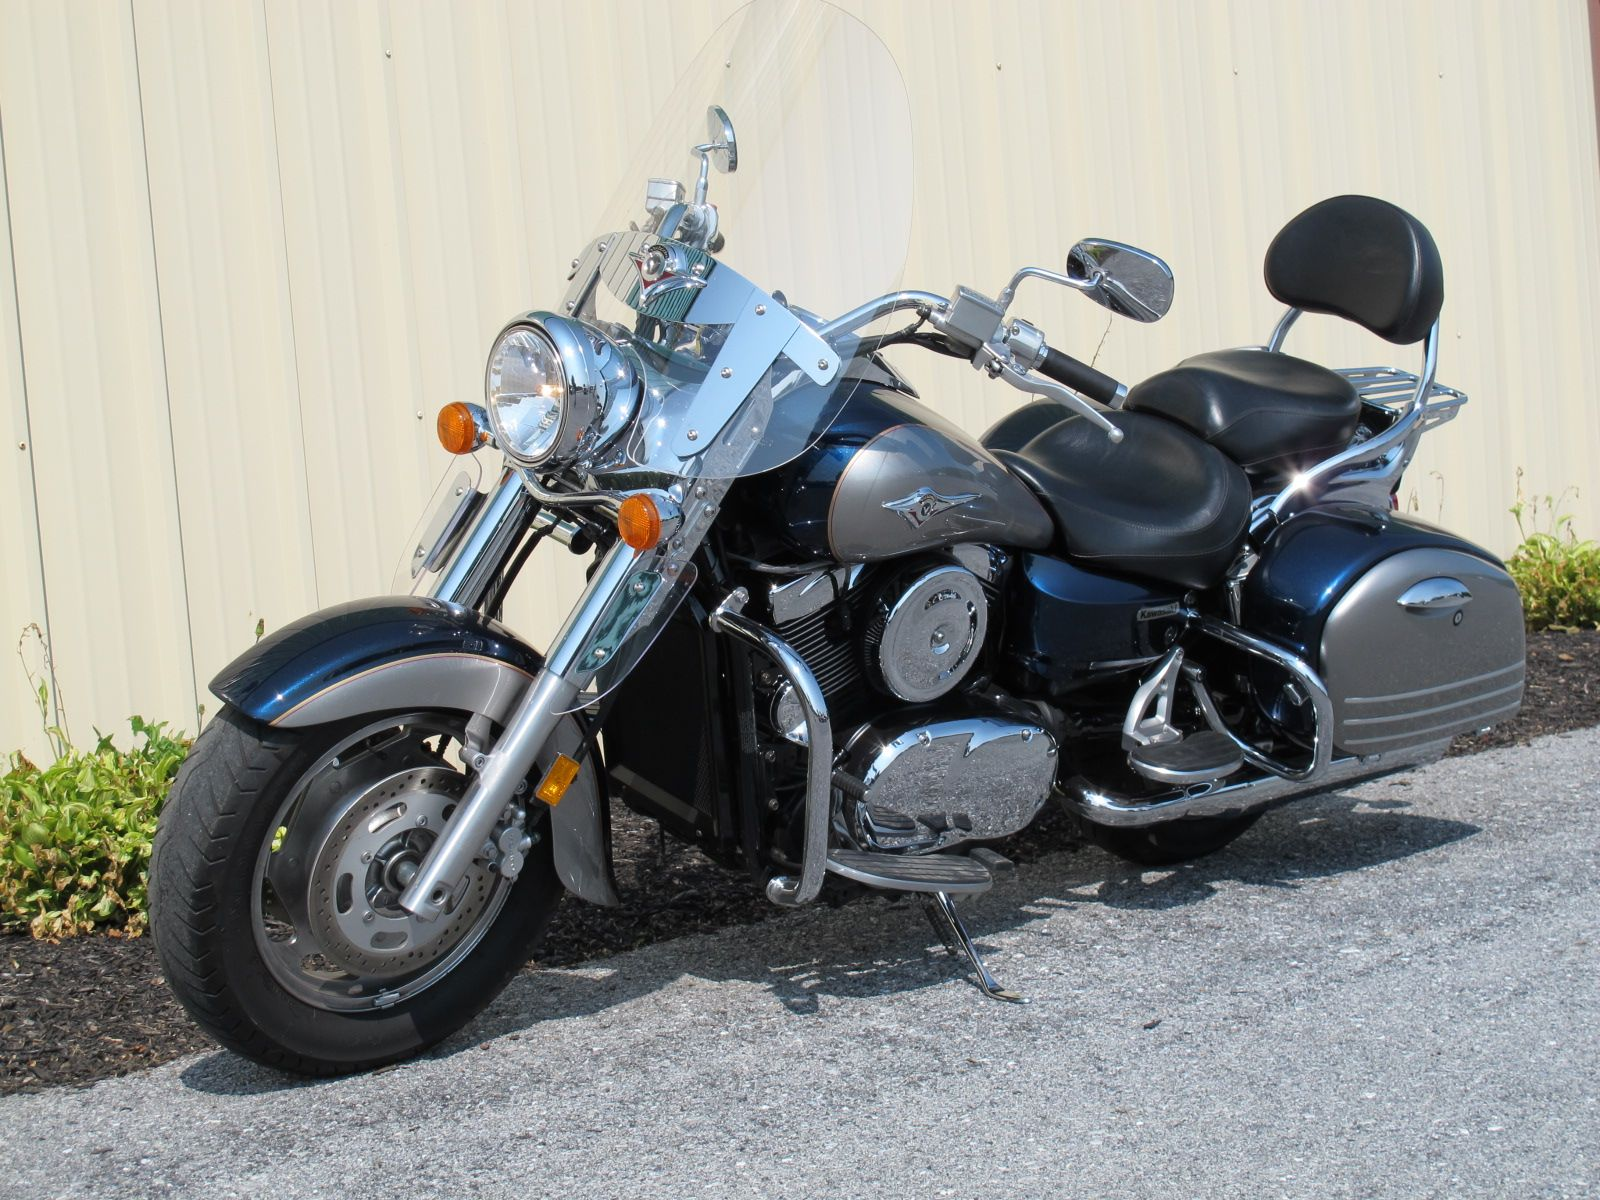 Wengers Of Myerstown >> Kawasaki Vulcan Nomad Motorcycles for sale at Wengers of Myerstown | Bikes for Sale